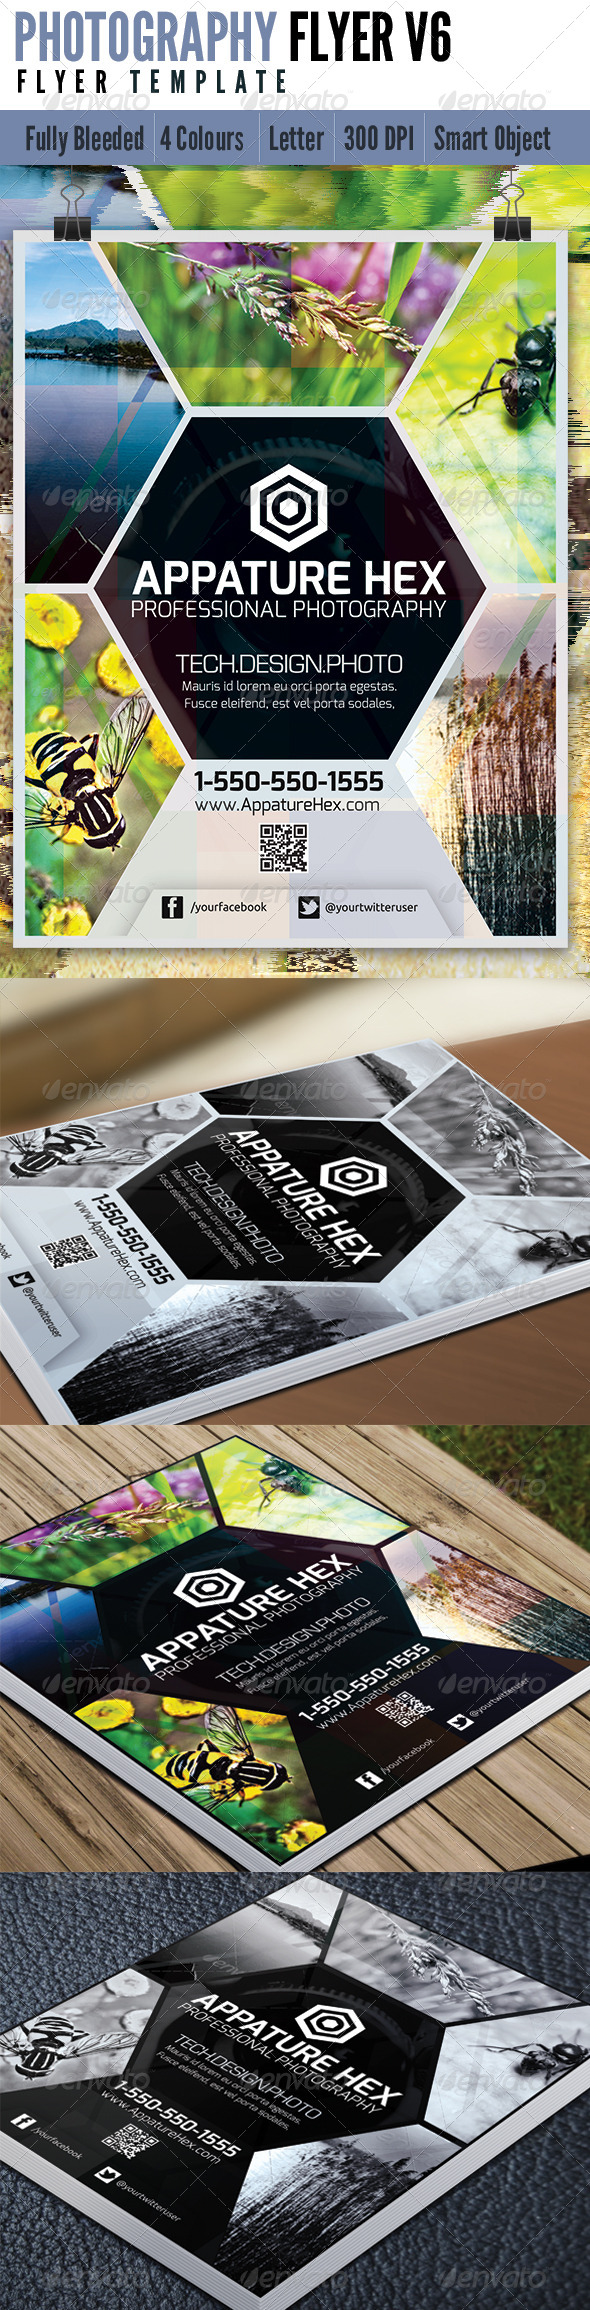 Photography Flyer V6 - Flyers Print Templates